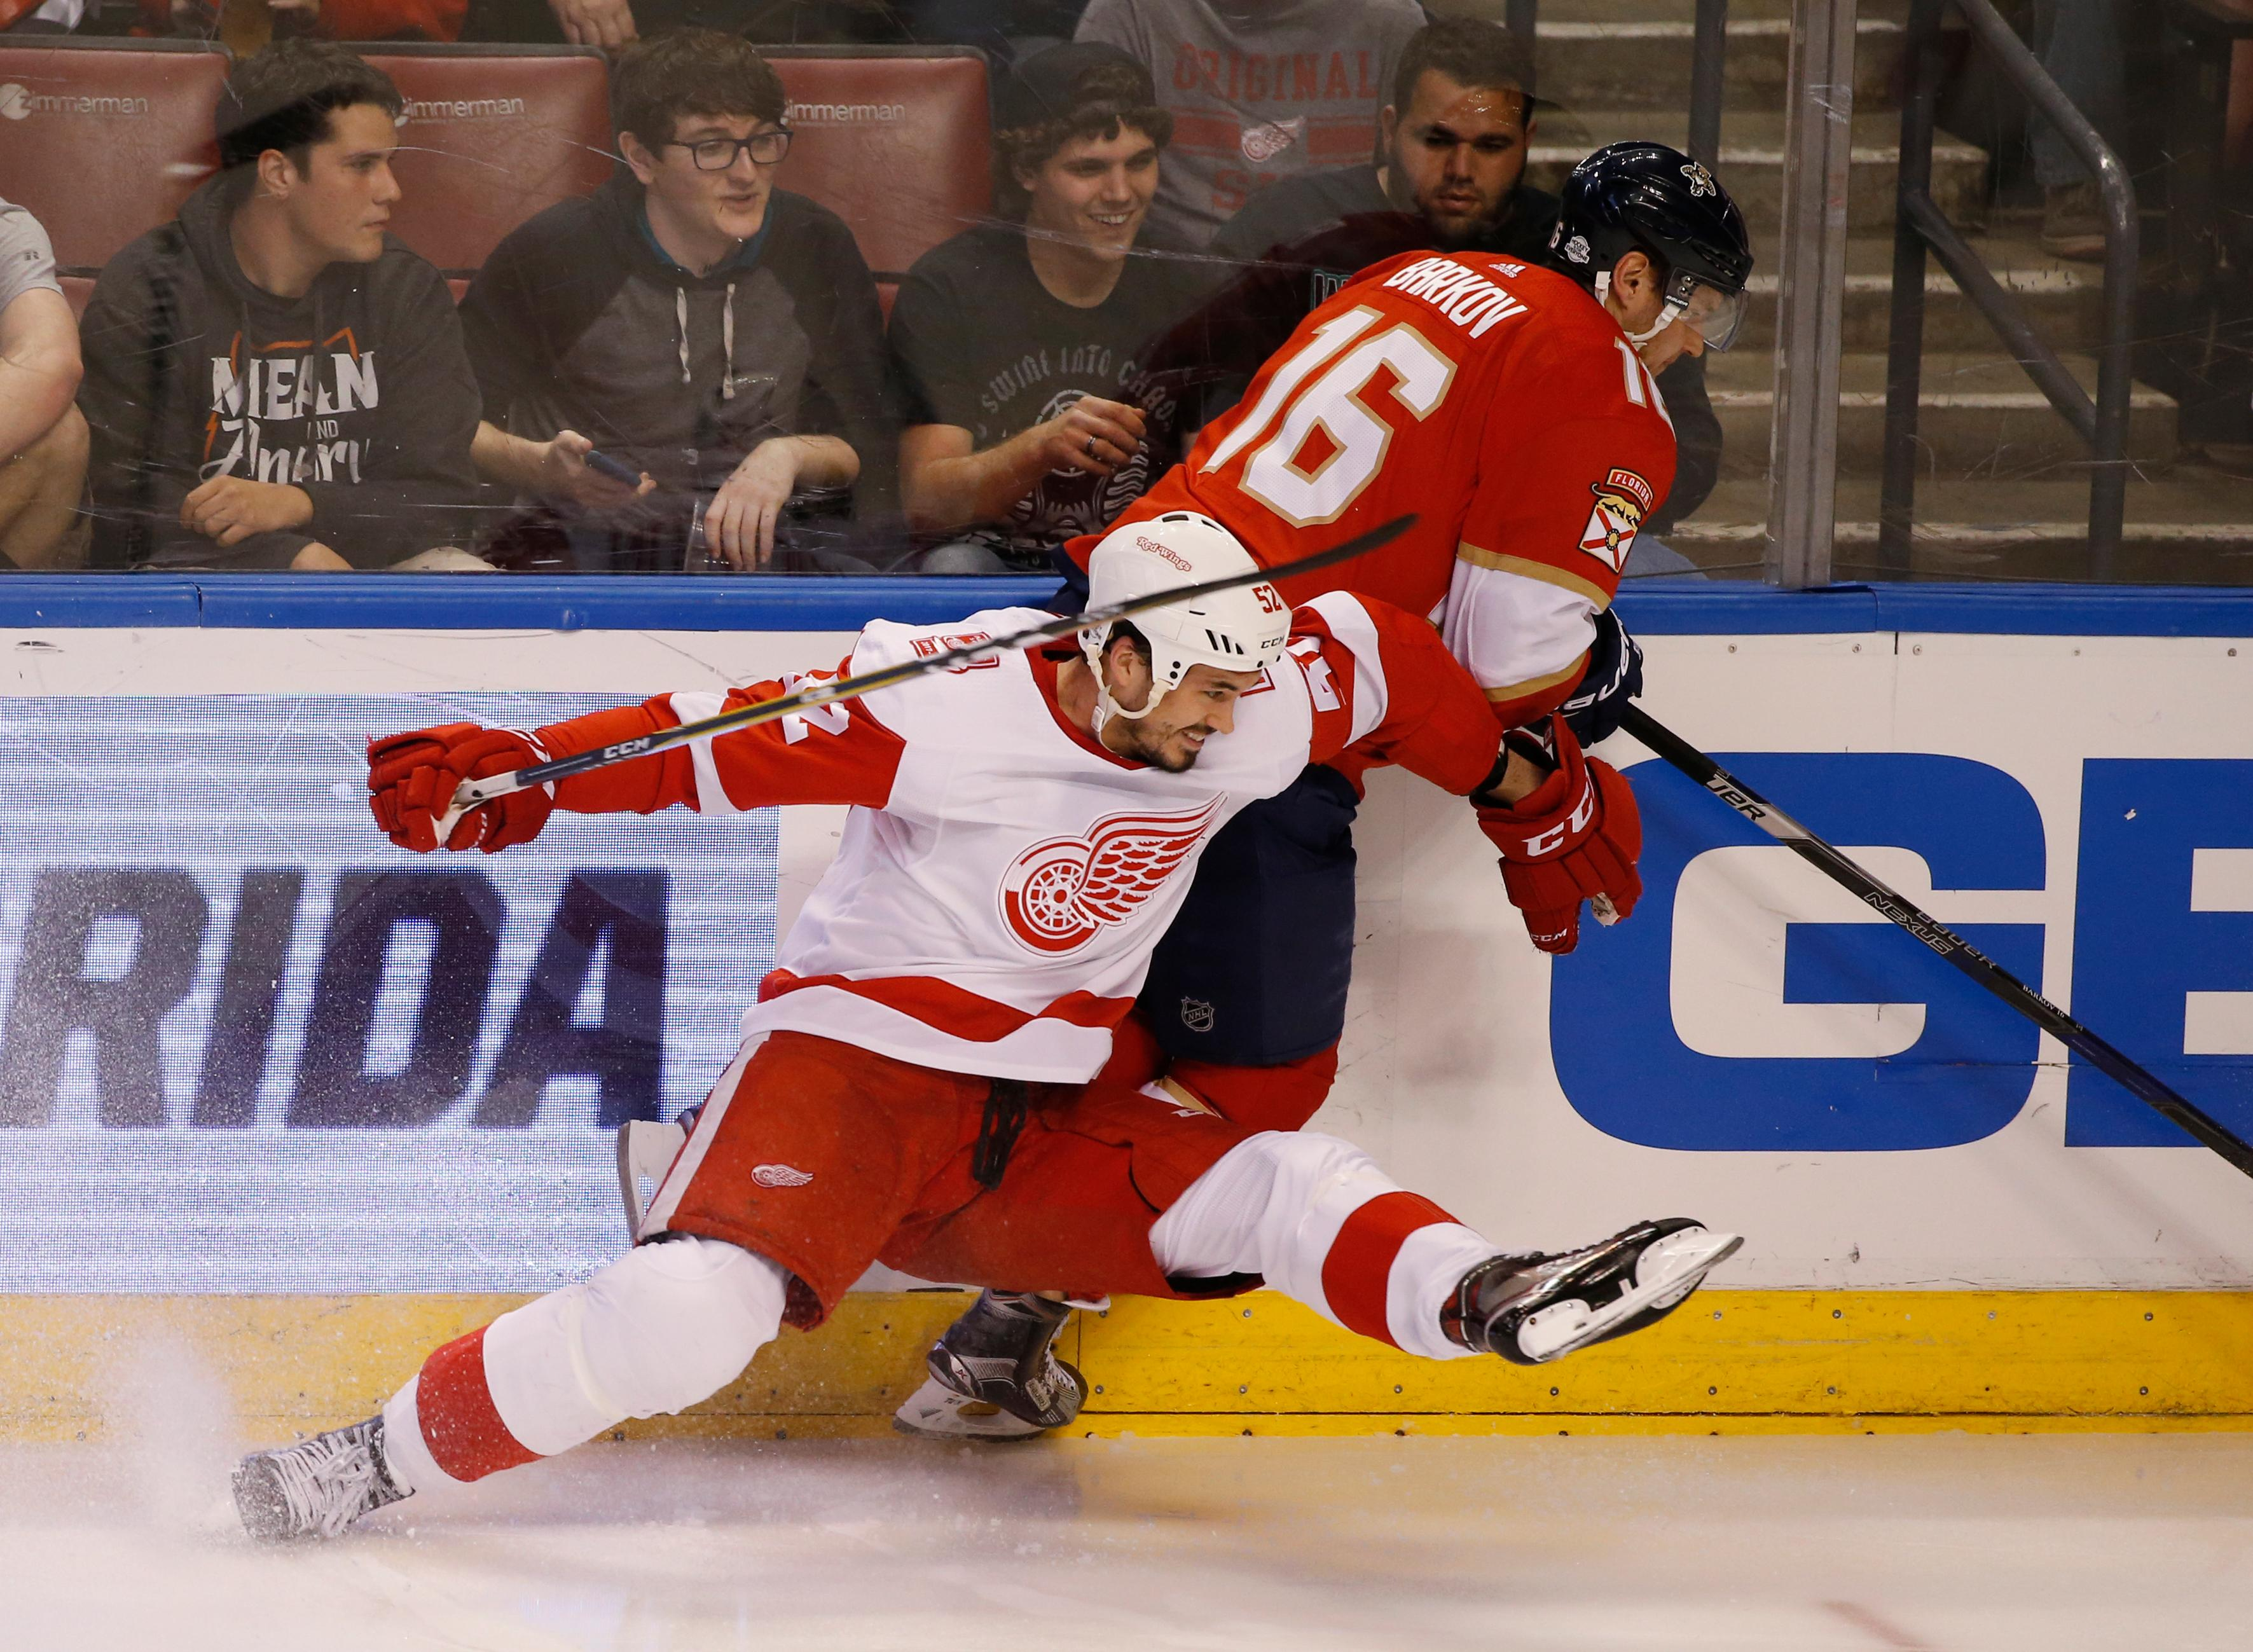 Detroit Red Wings defenseman Jonathan Ericsson, foreground, and Florida Panthers center Aleksander Barkov (16) battle for the puck during the second period of an NHL hockey game, Saturday, Feb. 3, 2018 in Sunrise, Fla. (AP Photo/Wilfredo Lee)